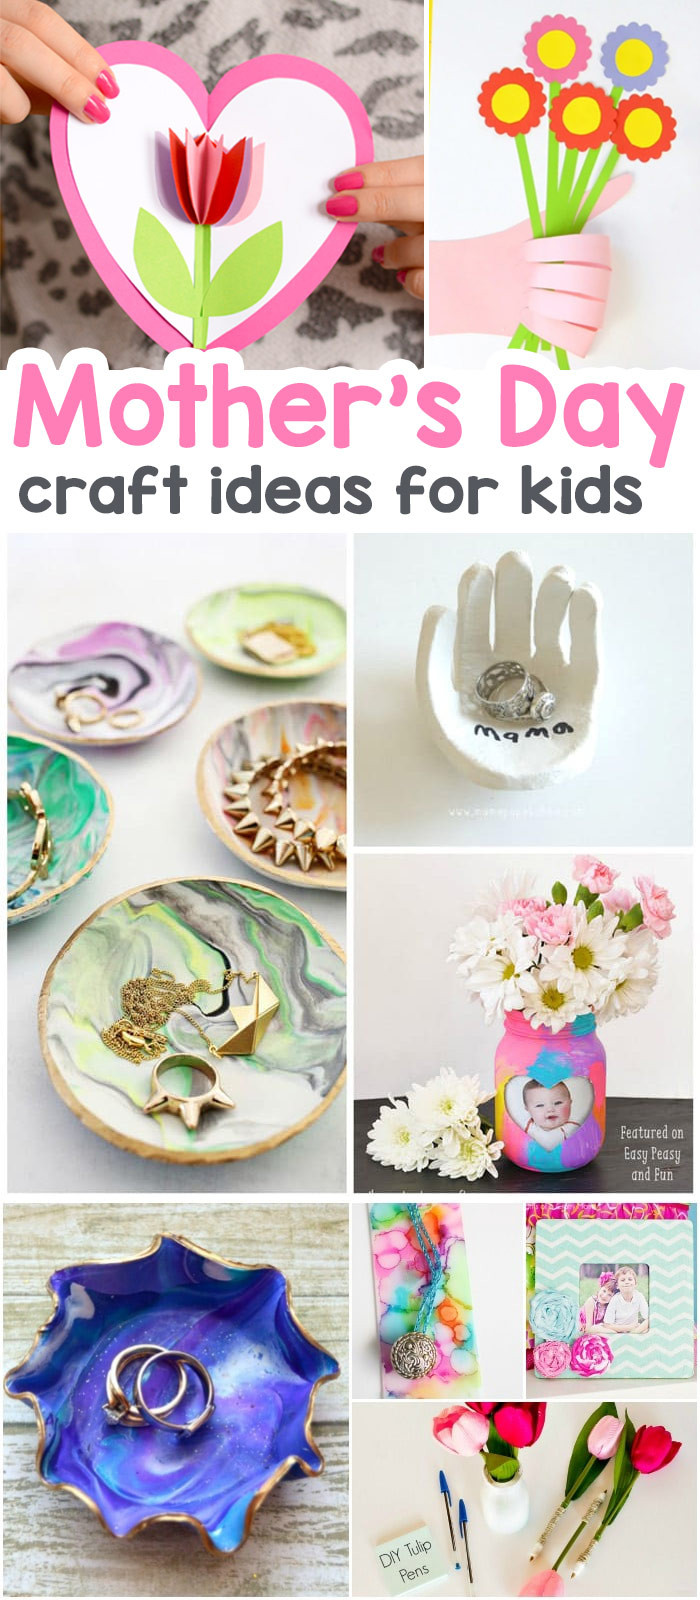 Best ideas about Father'S Day Craft Ideas For Preschoolers . Save or Pin 25 Mothers Day Crafts for Kids Most Wonderful Cards Now.